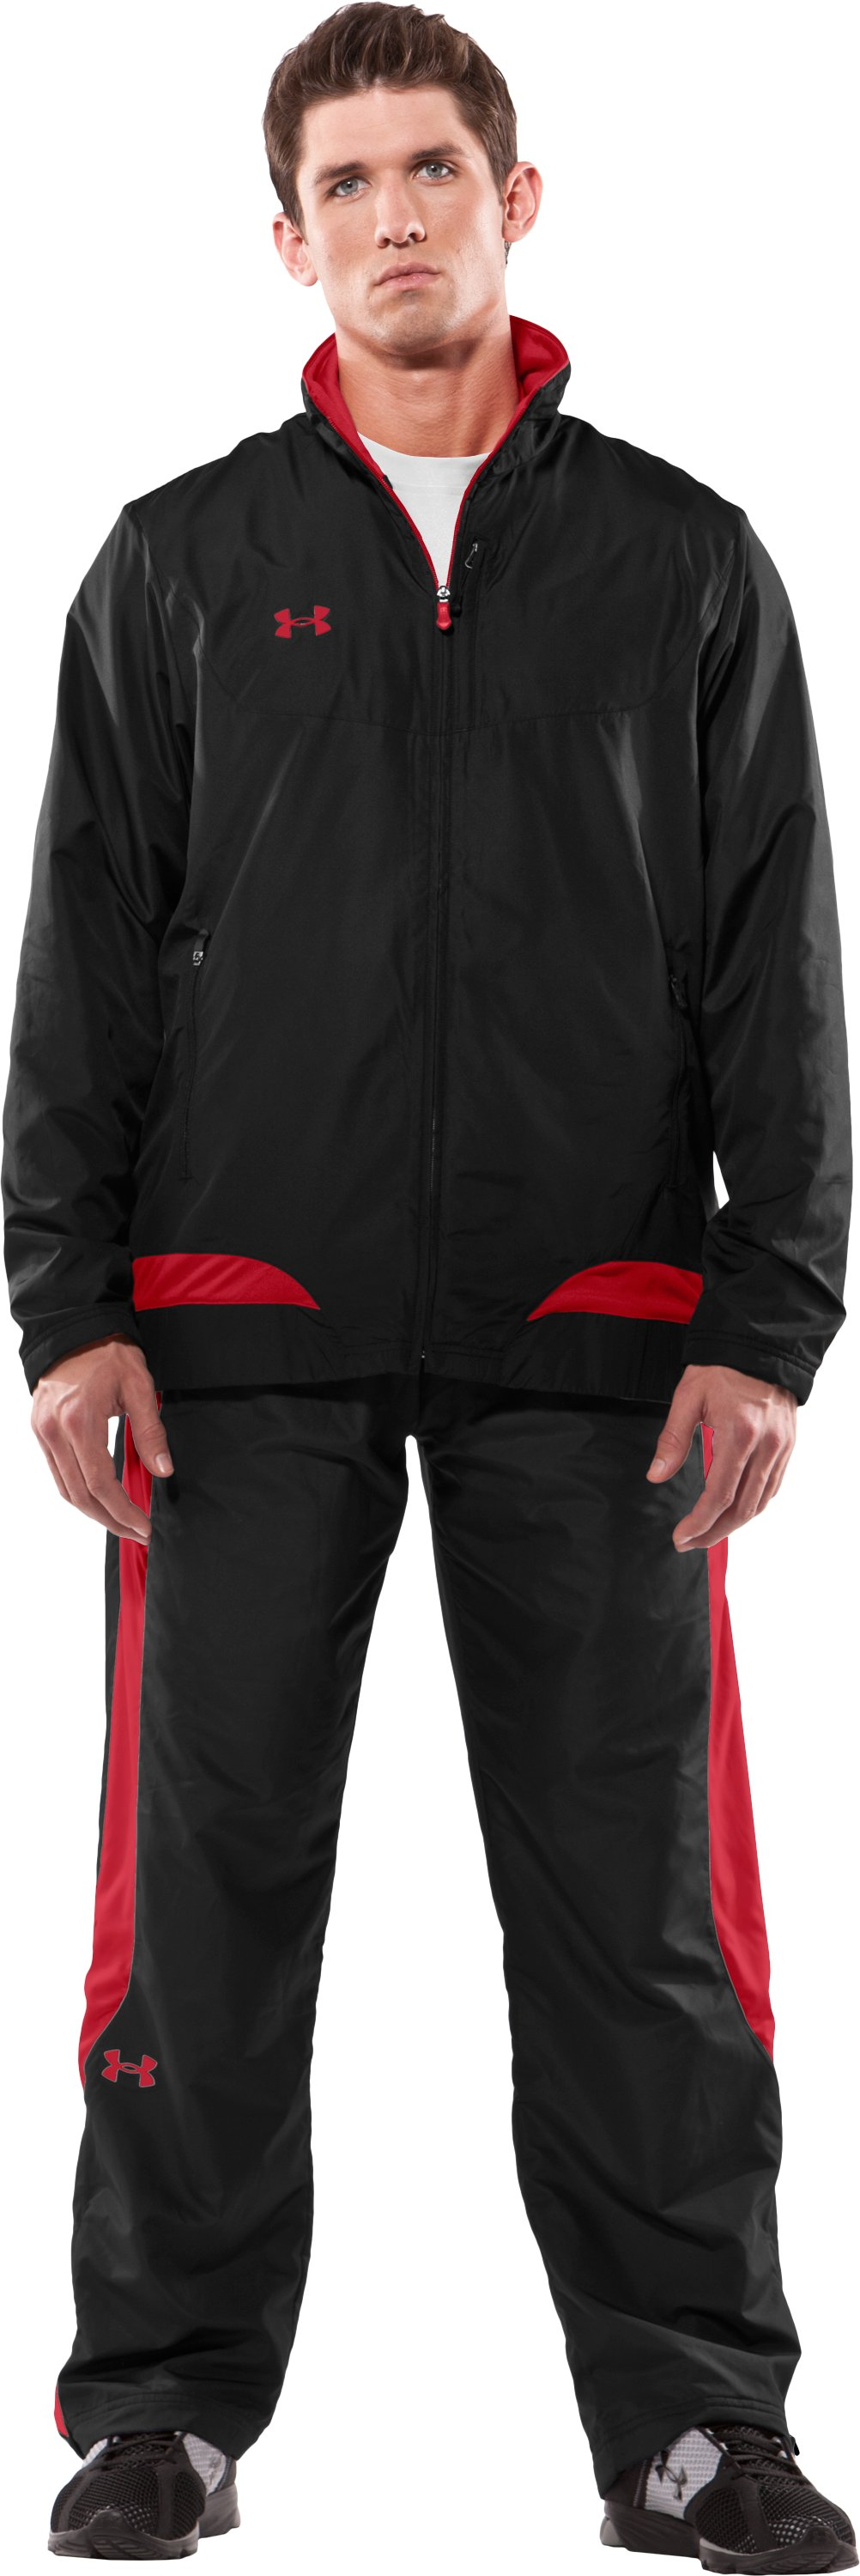 Men's Canuck Hockey Warm-Up Jacket, Black , zoomed image